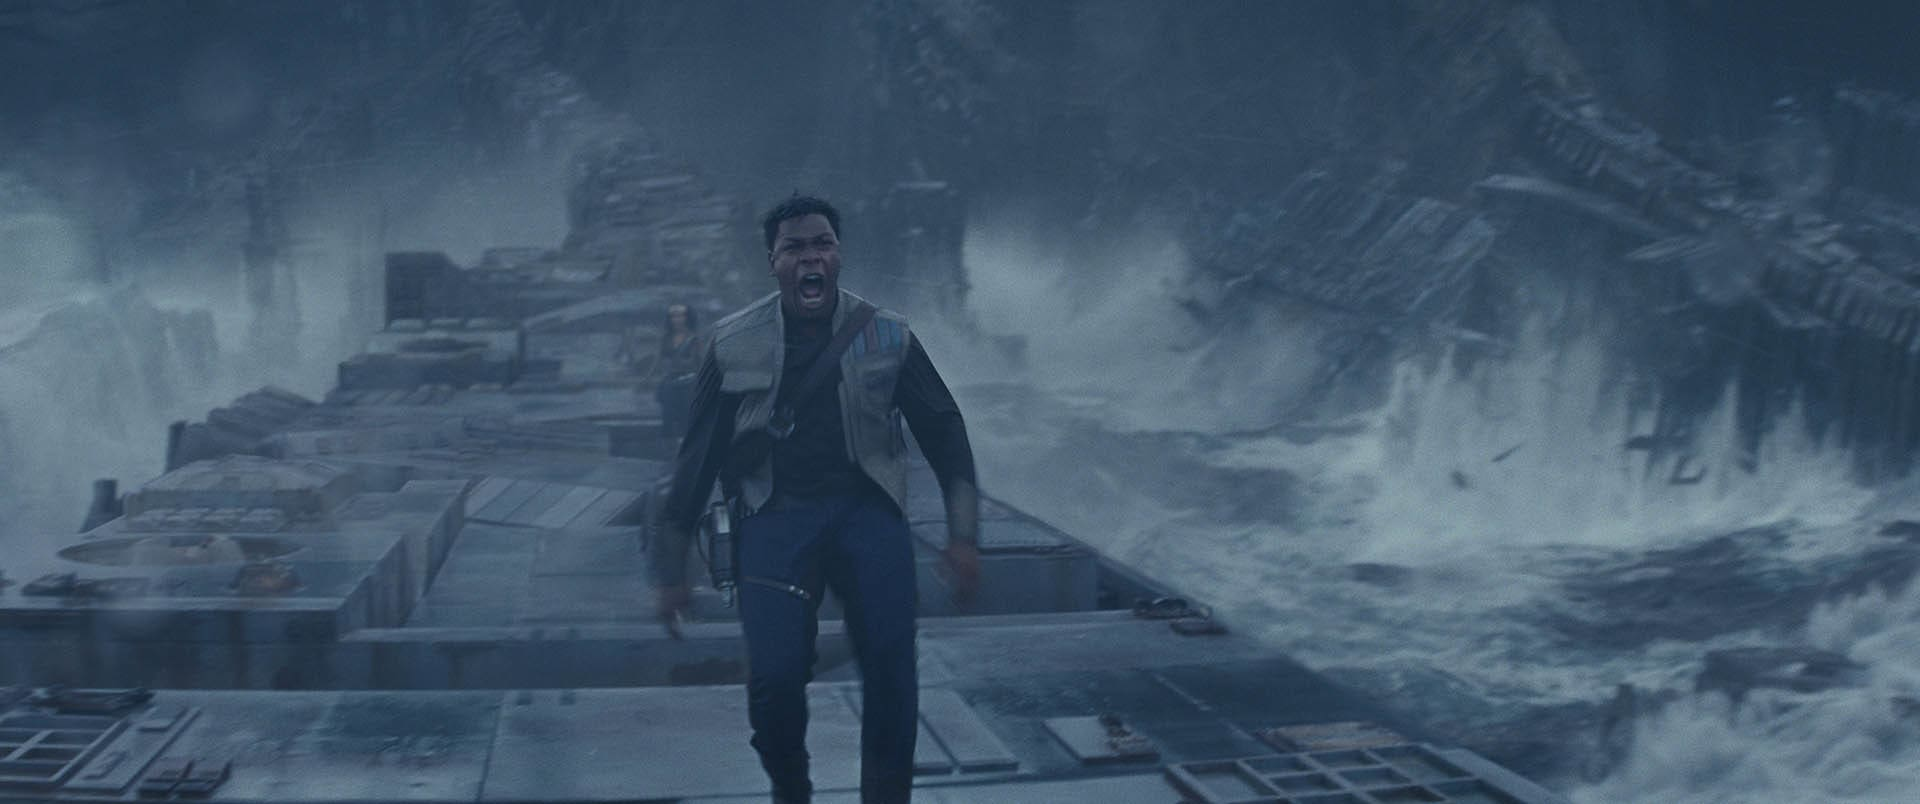 The Rise of Skywalker Trailers and Teasers - Page 10 Ep9-ff-001746_7798a74b